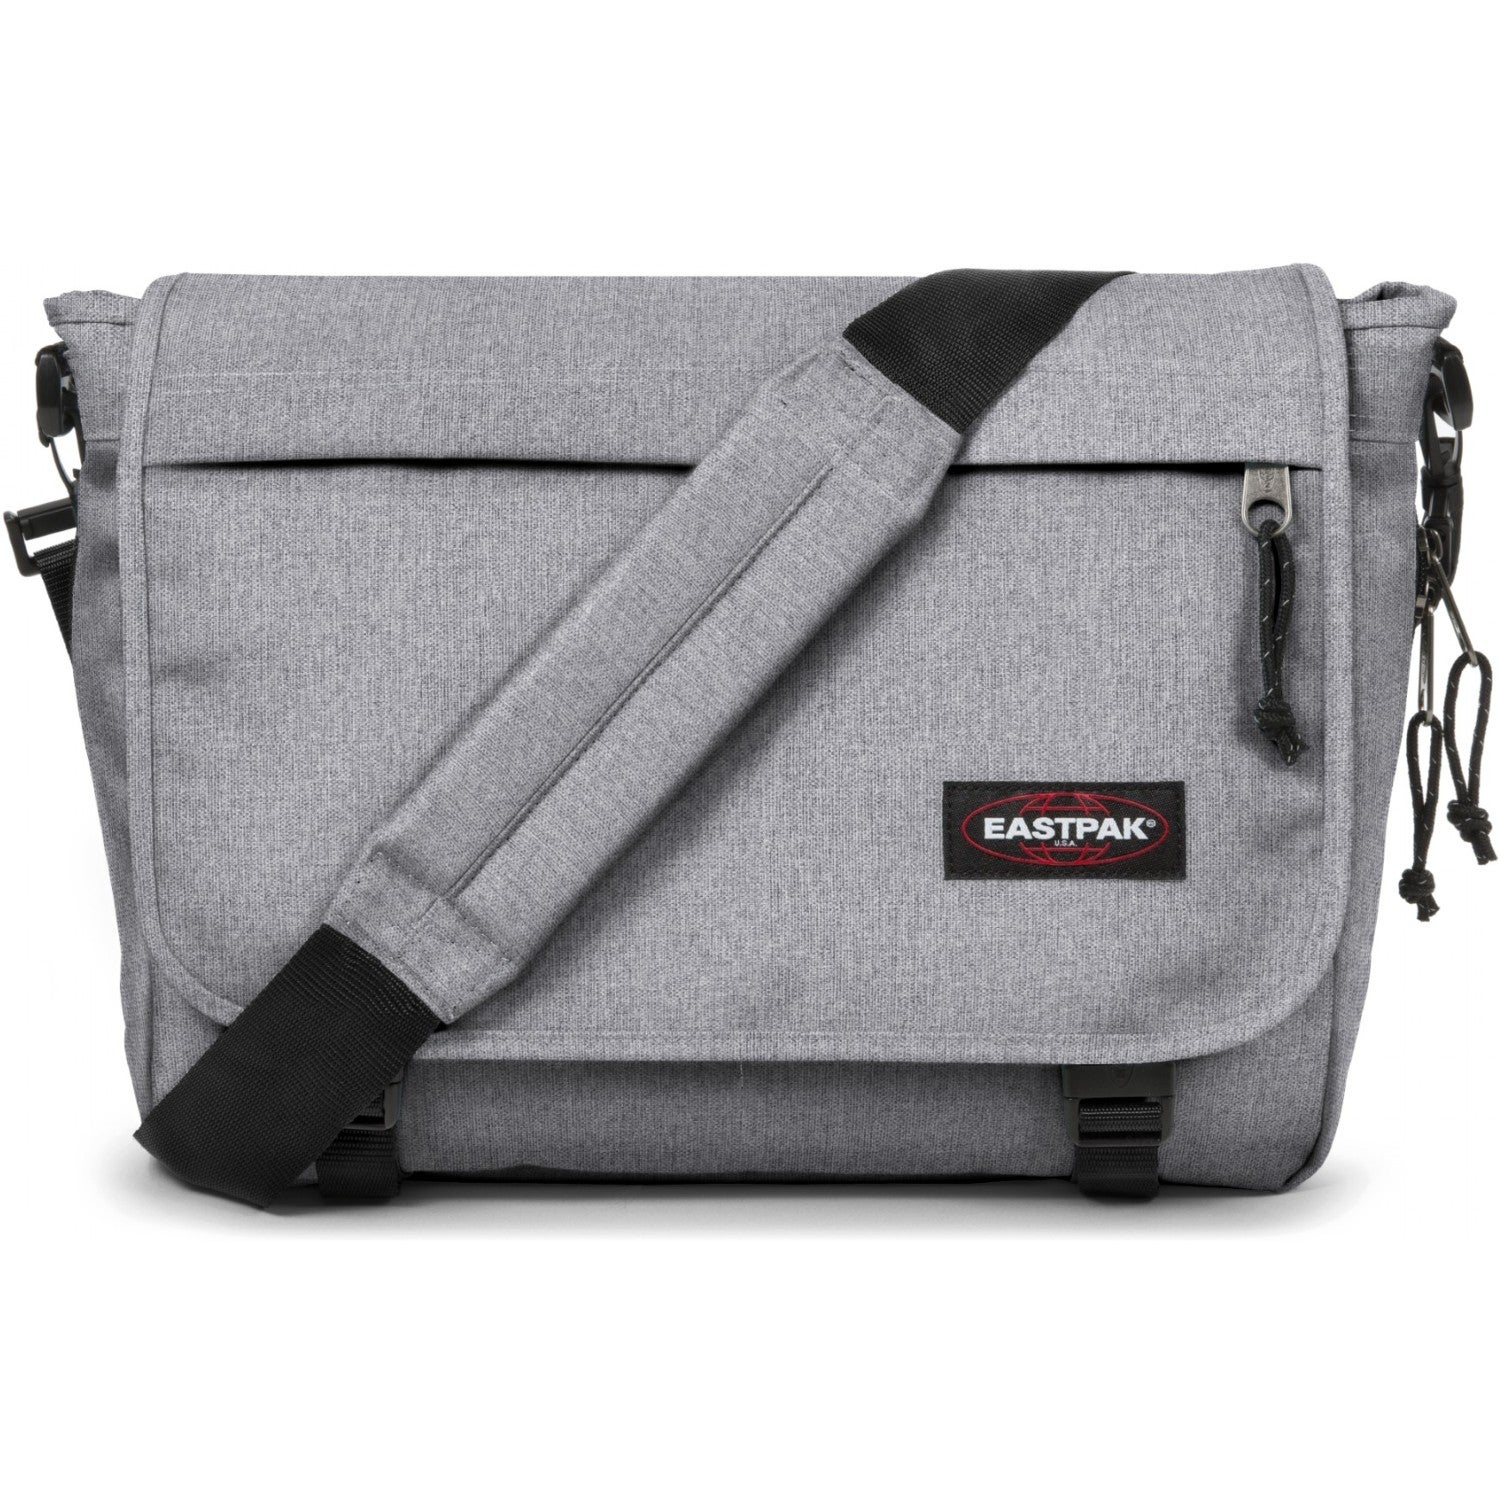 eece460585 Eastpak Delegate Bag available from Blackleaf